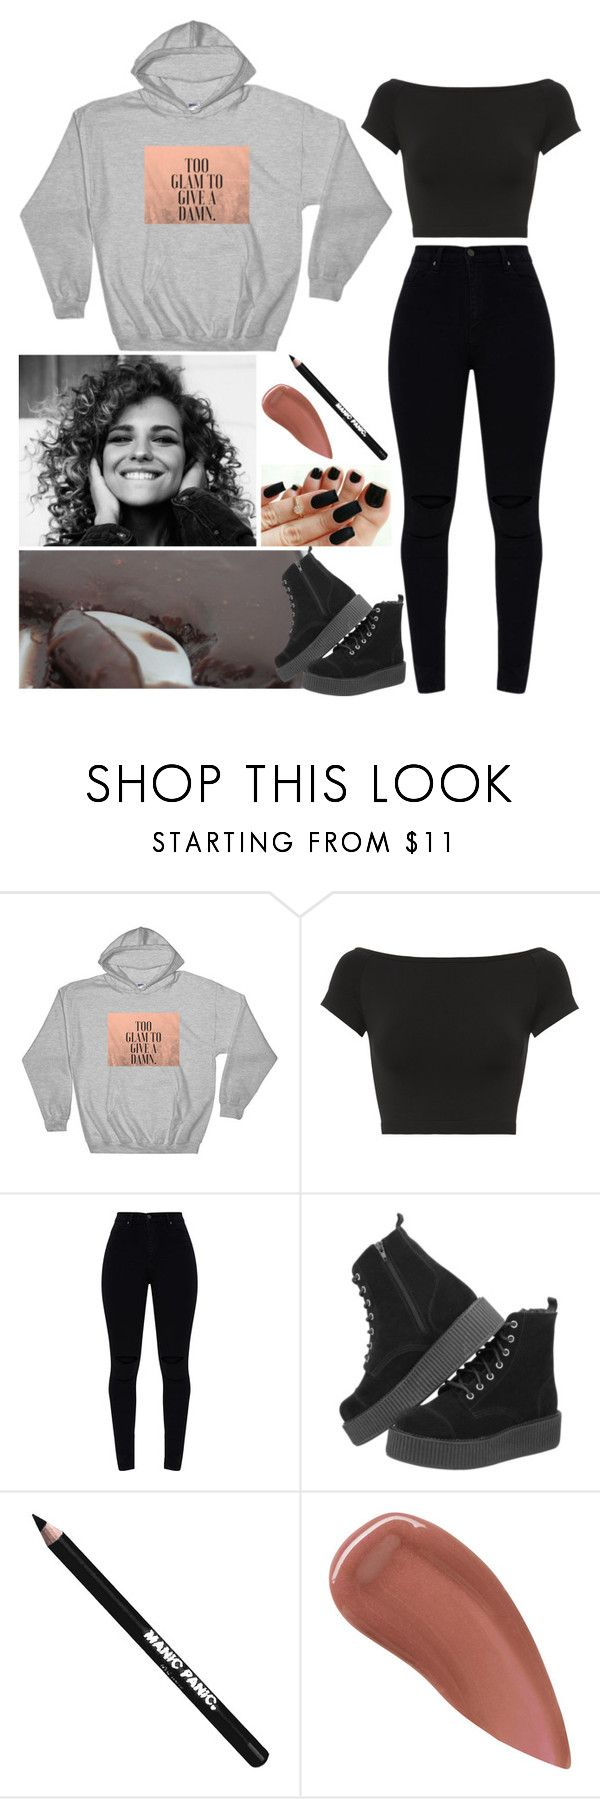 """Make a set!"" by annacastrolima ❤ liked on Polyvore featuring Helmut Lang, T.U.K., Manic Panic NYC, Lipstick Queen, comfy and blackandgray"